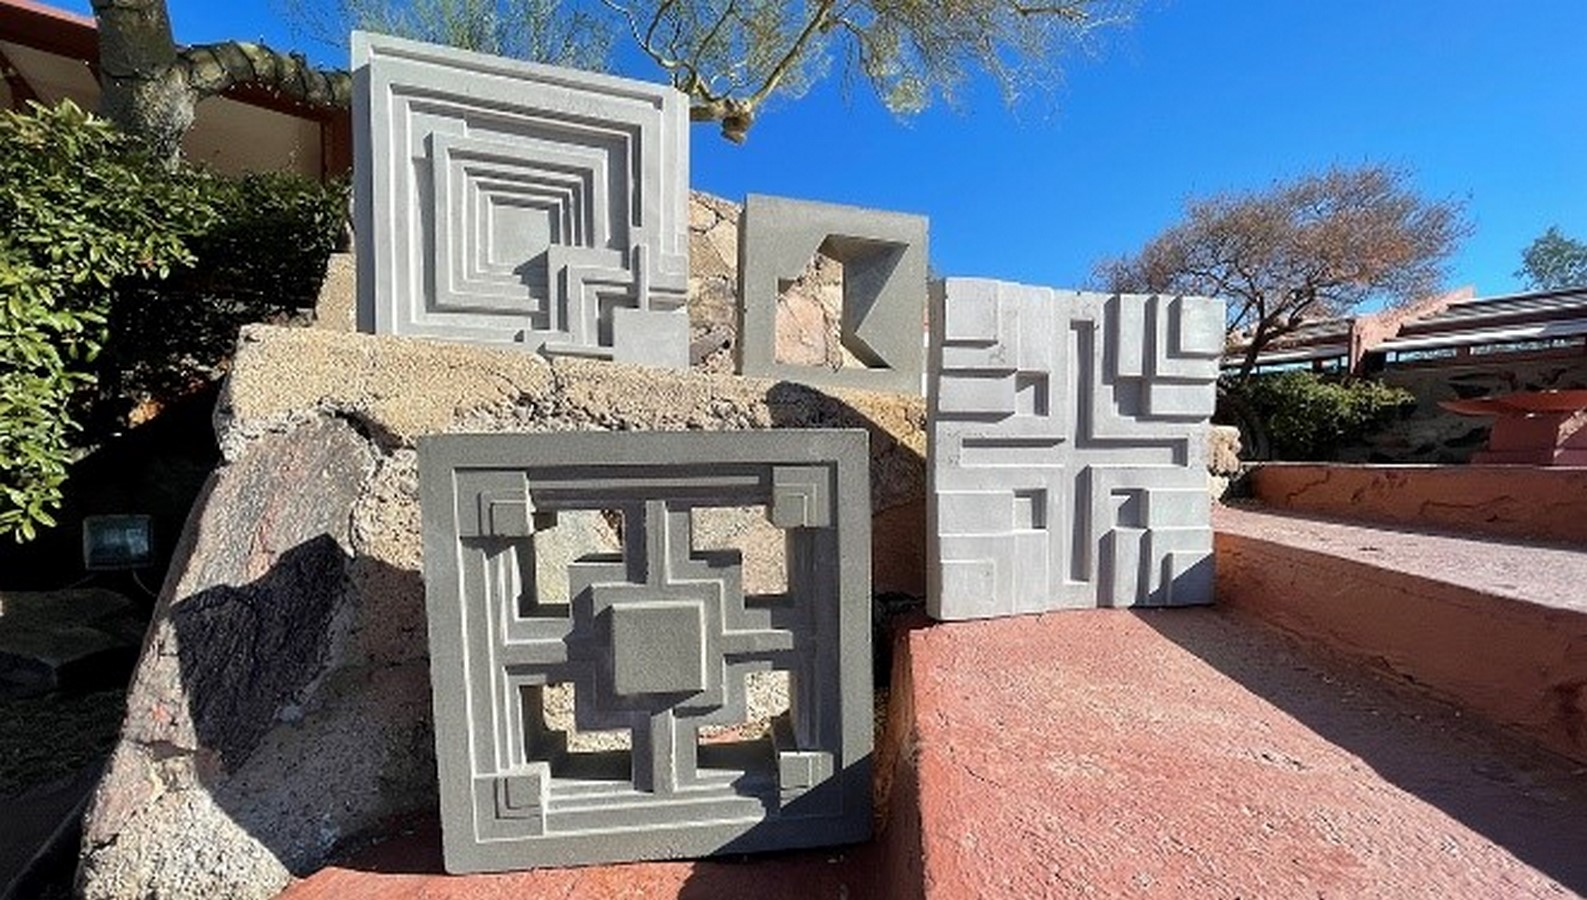 Textile Blocks and 3D Cement Tiles inspired by Frank Lloyd Wright - Sheet2